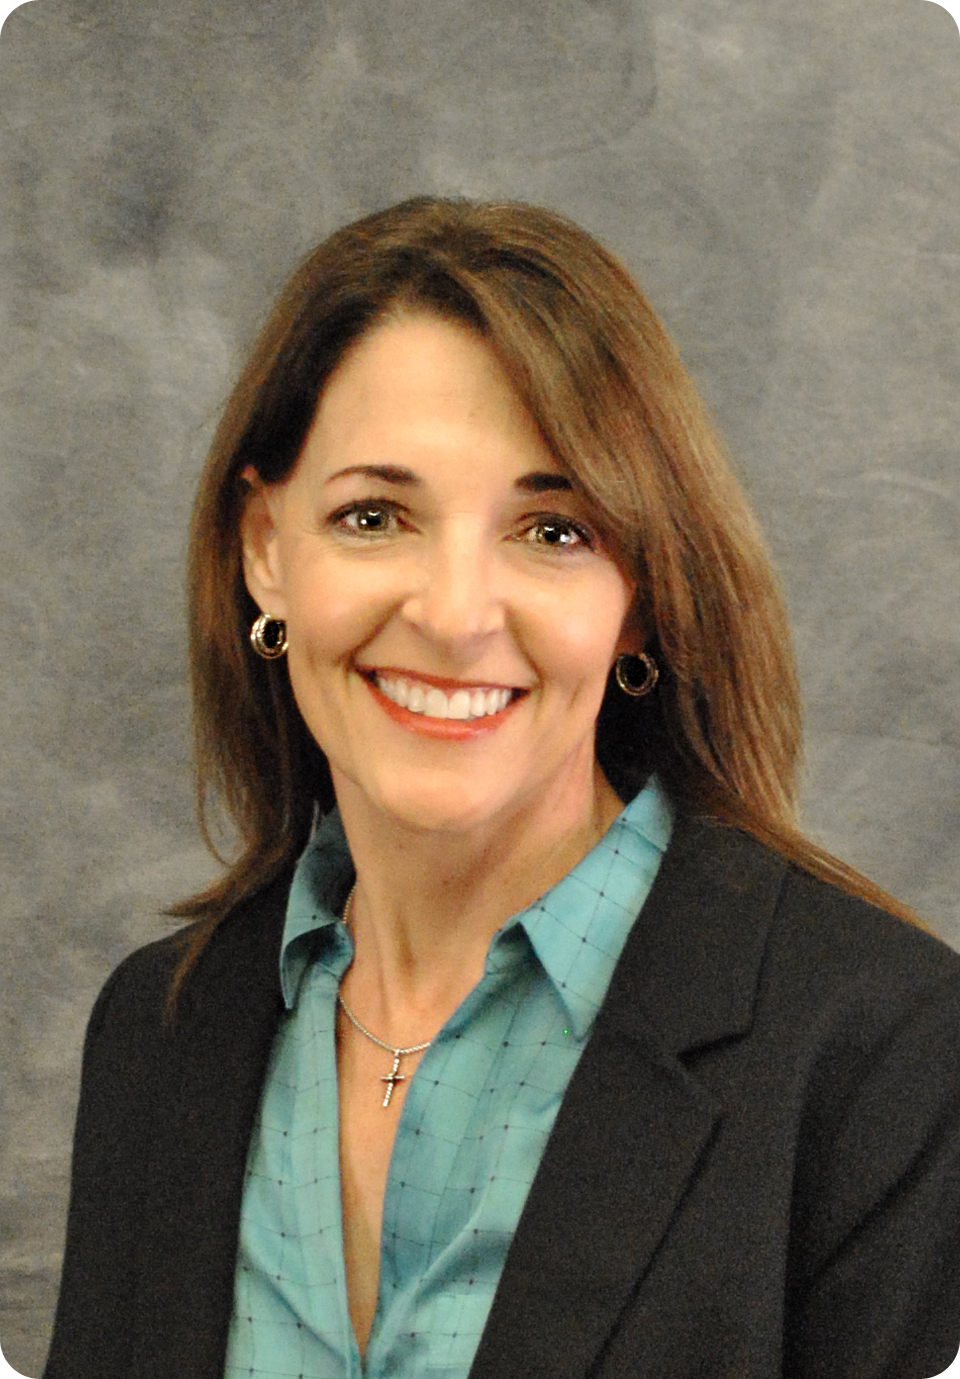 Gretchen M. Bourgeois, CPA